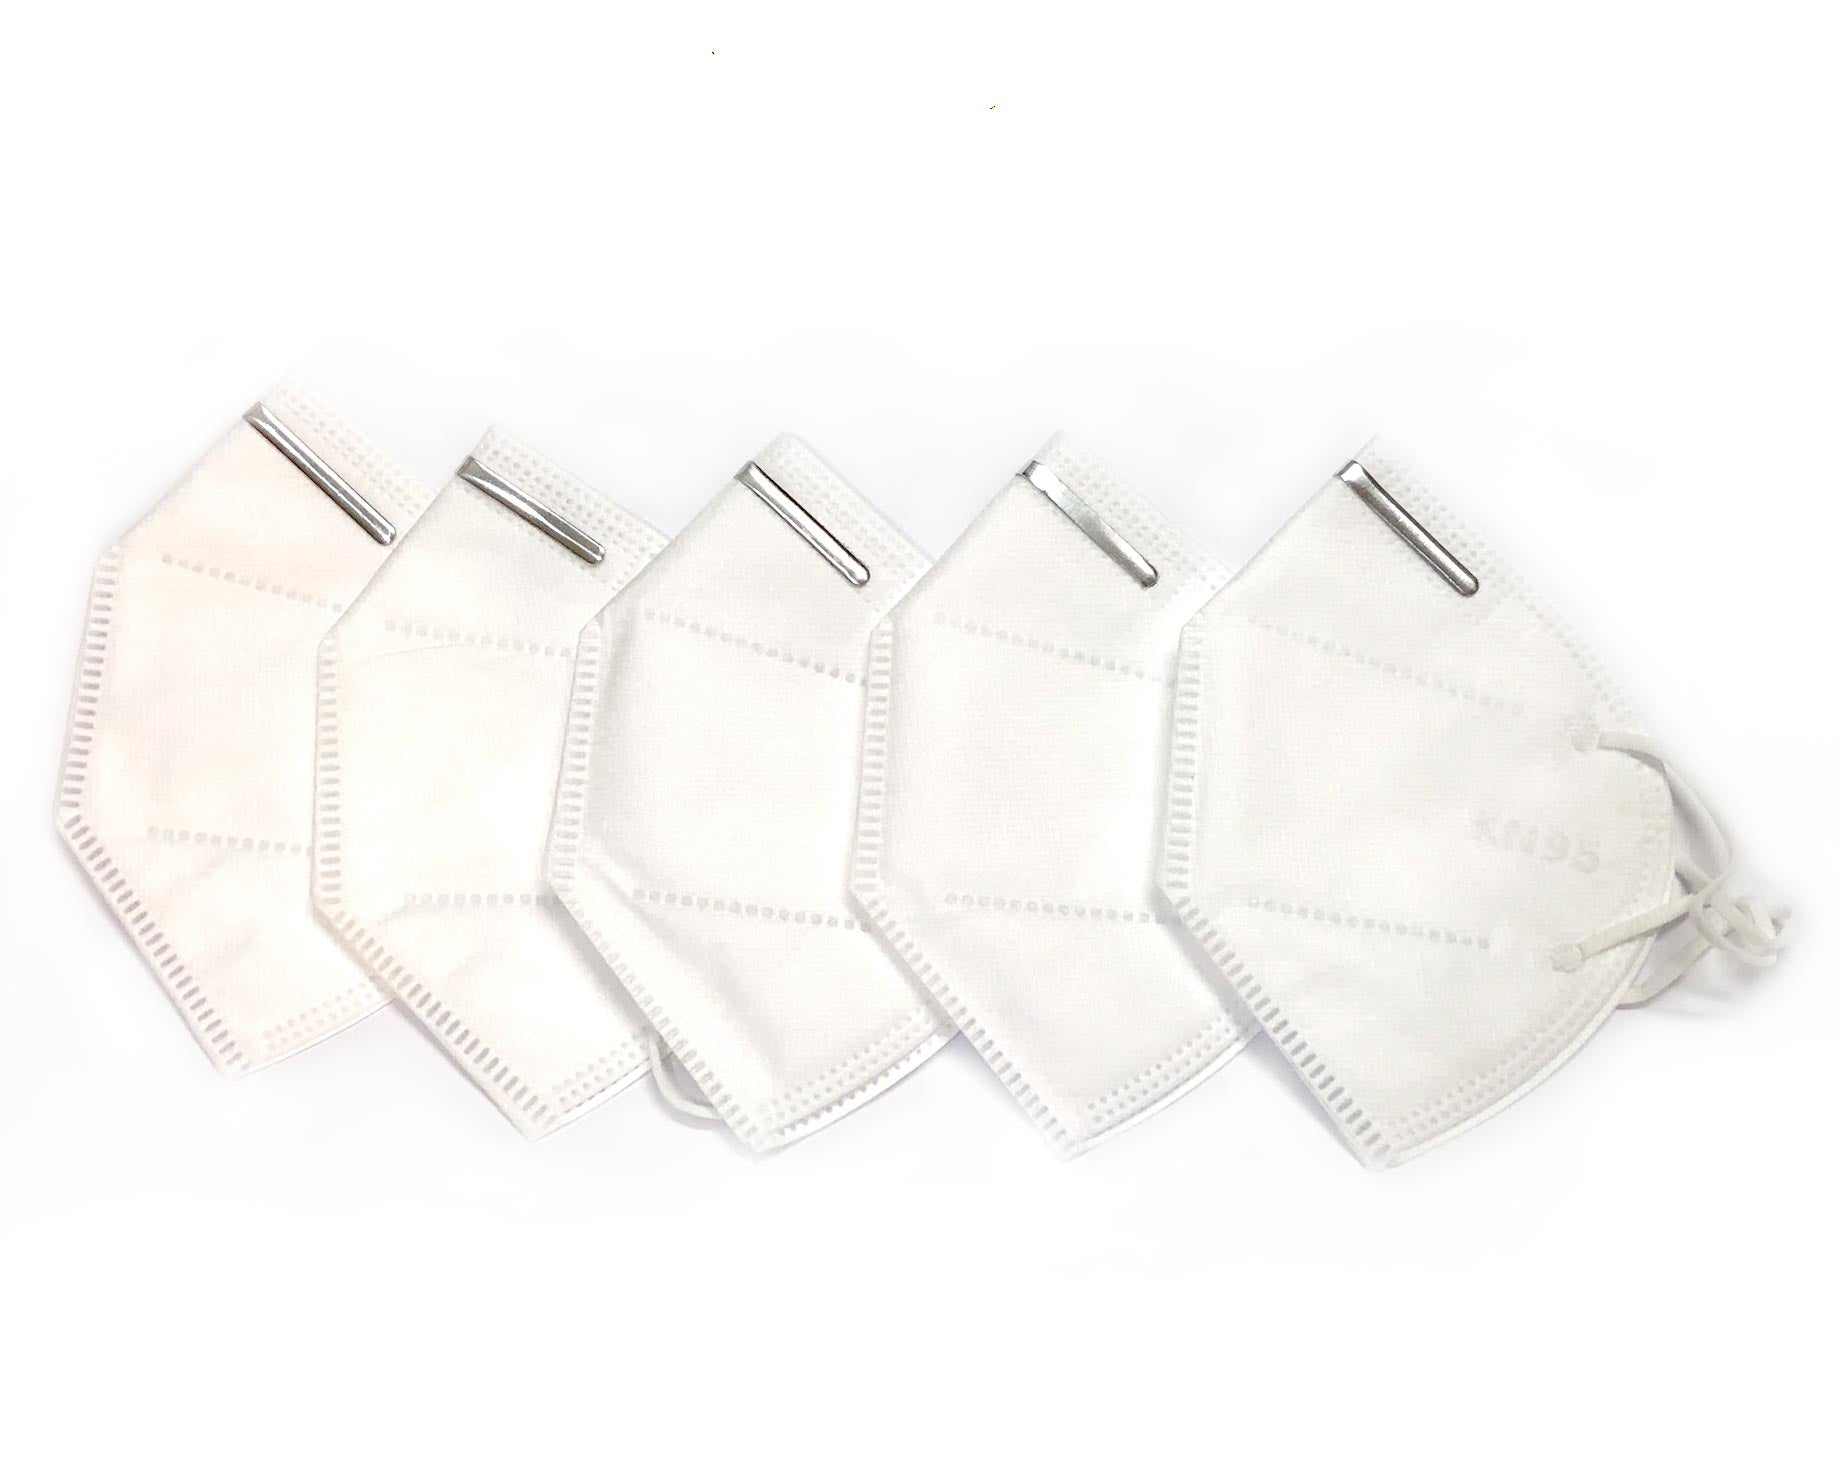 KN95 Face Mask: 5 PCS/pack, 2 PACKS, 10 Pieces total